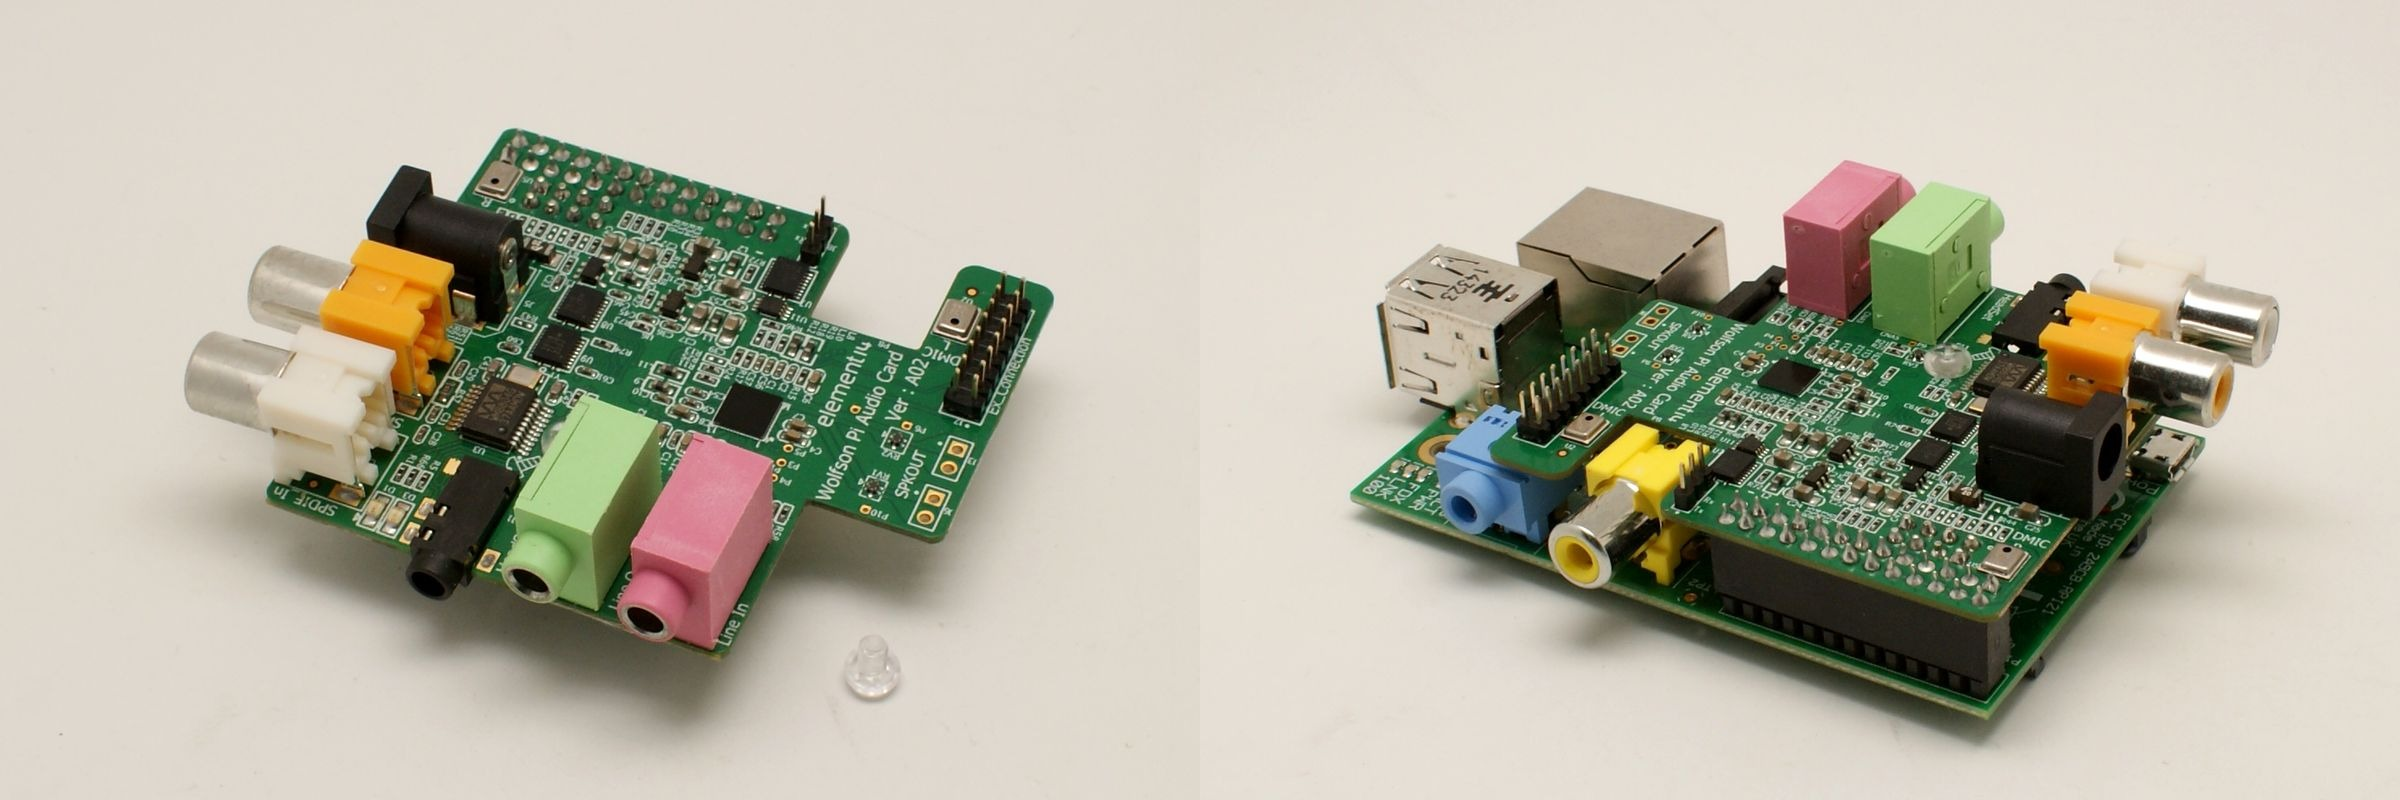 wolfson_audio_card_for_raspberry_pi_512mb